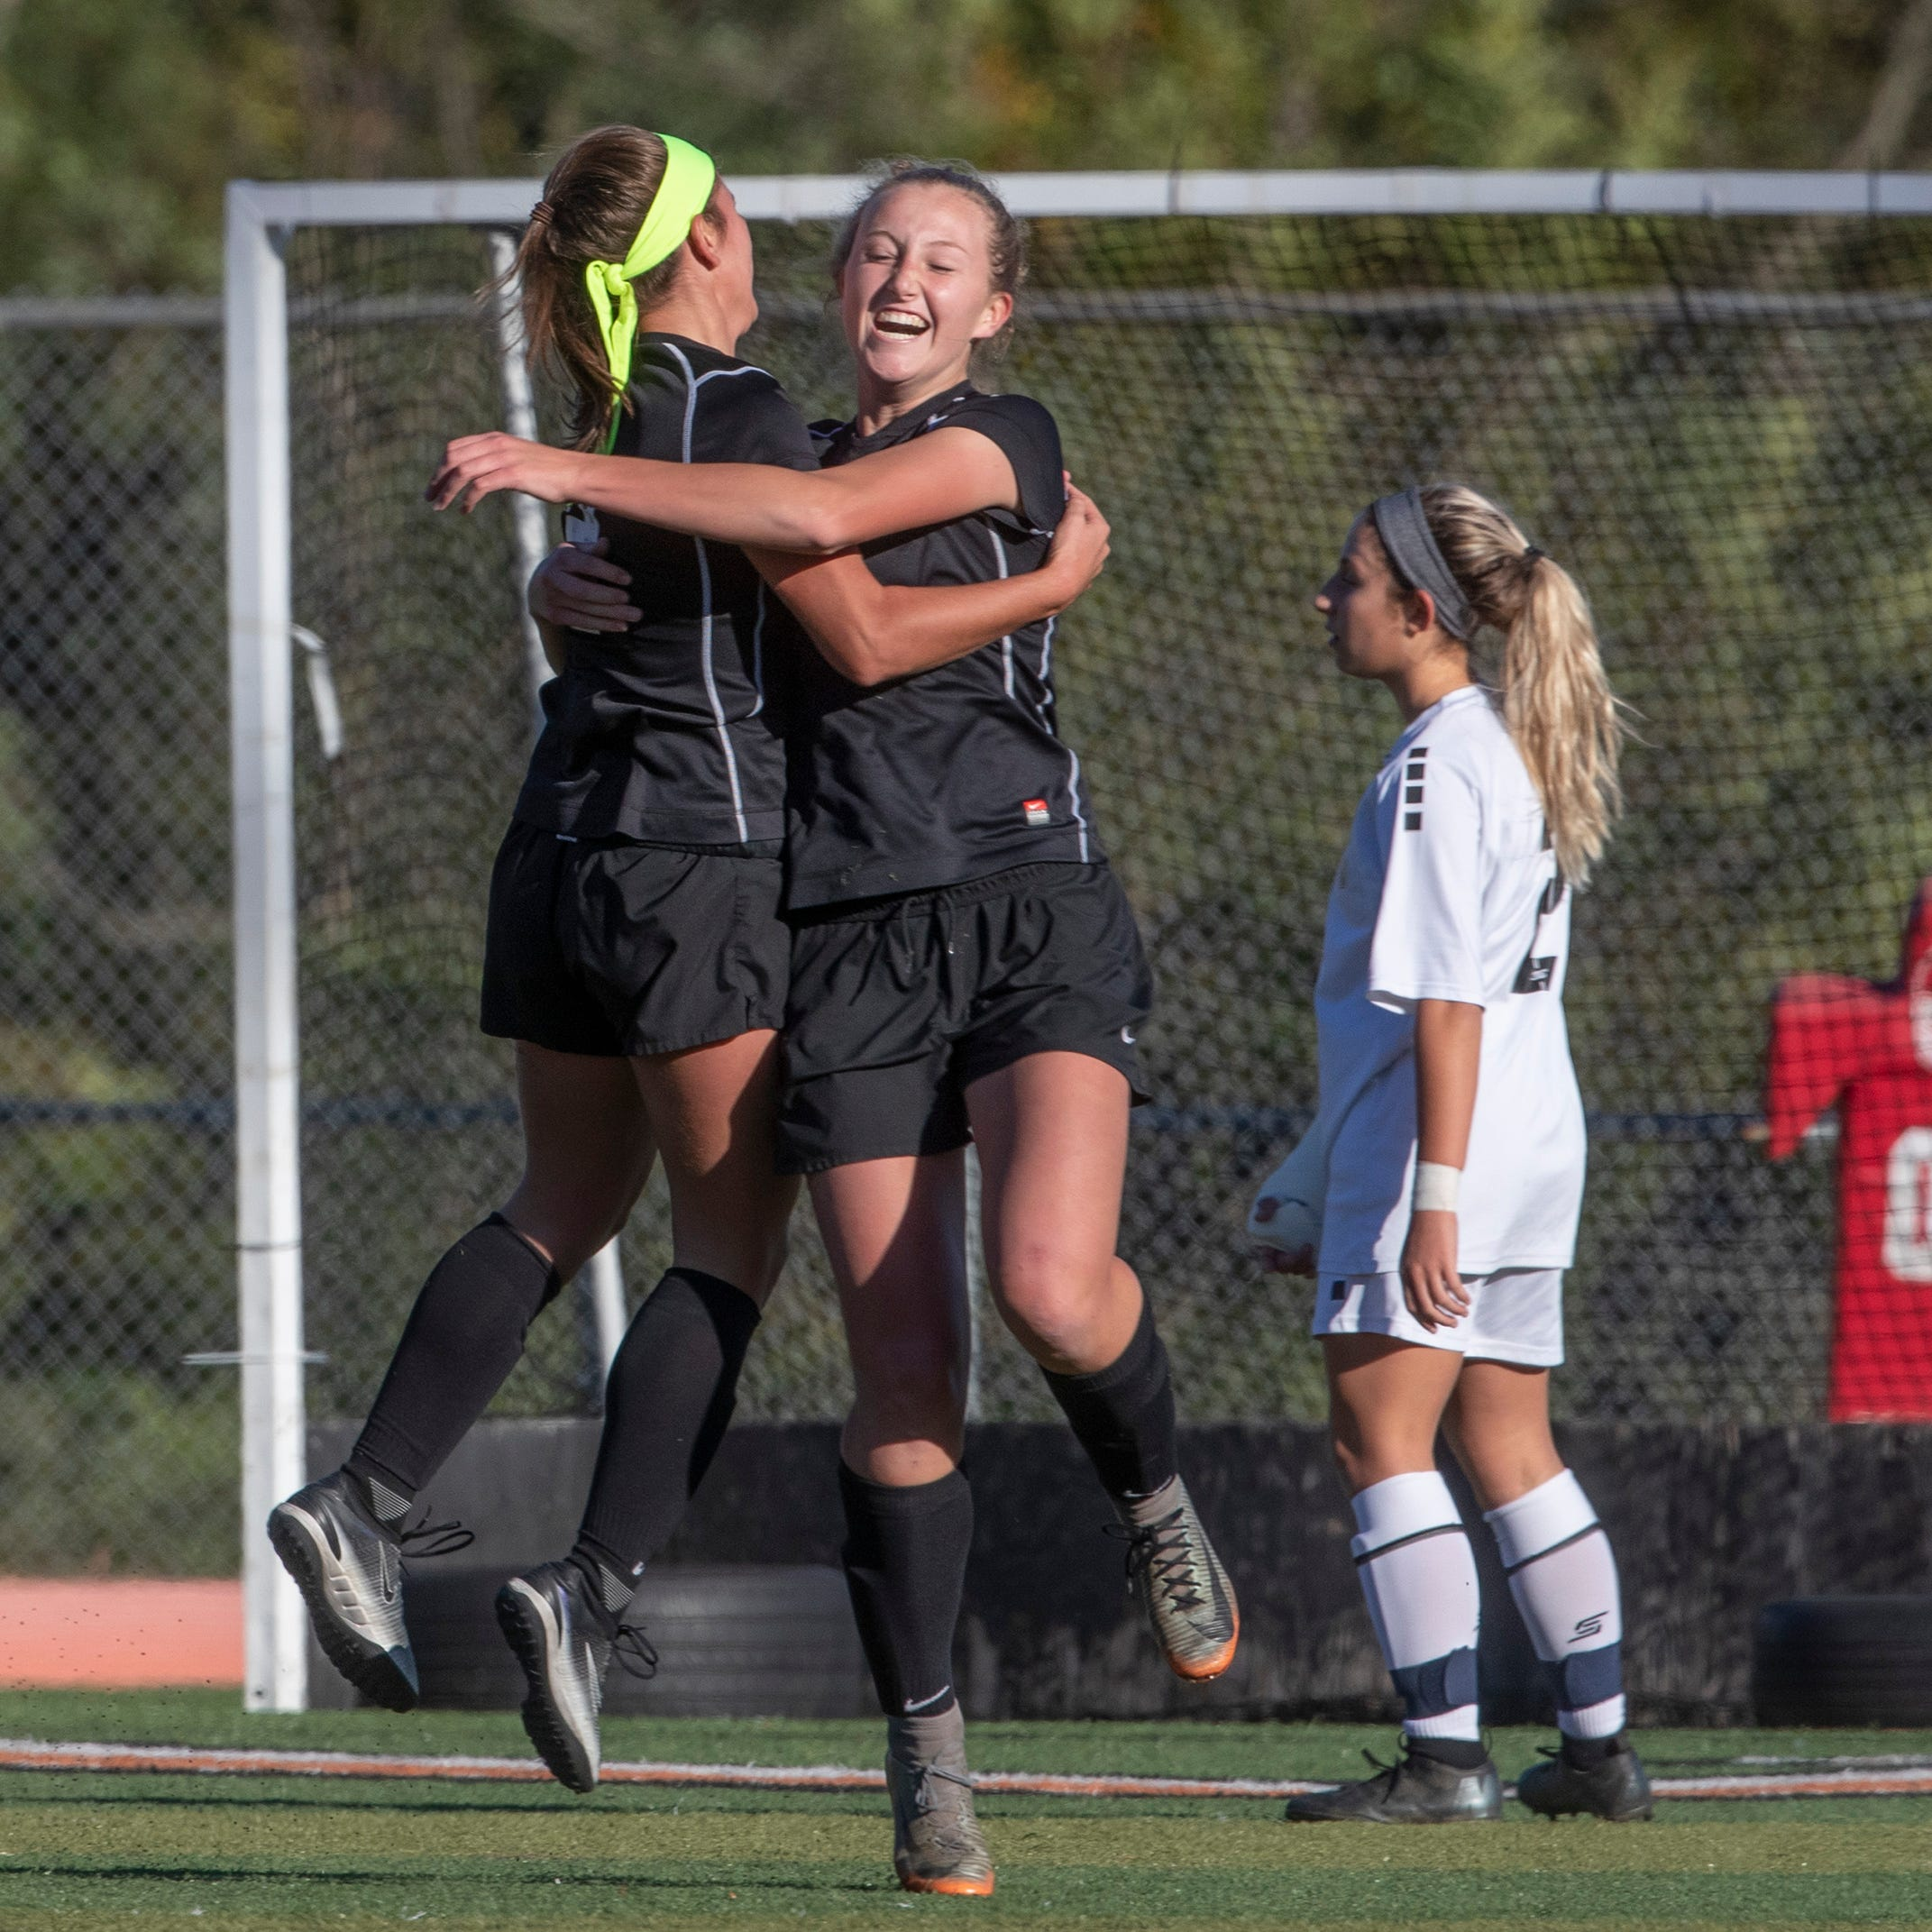 NJ Girls Soccer: Middletown North cools off hot upset-minded Marlboro squad